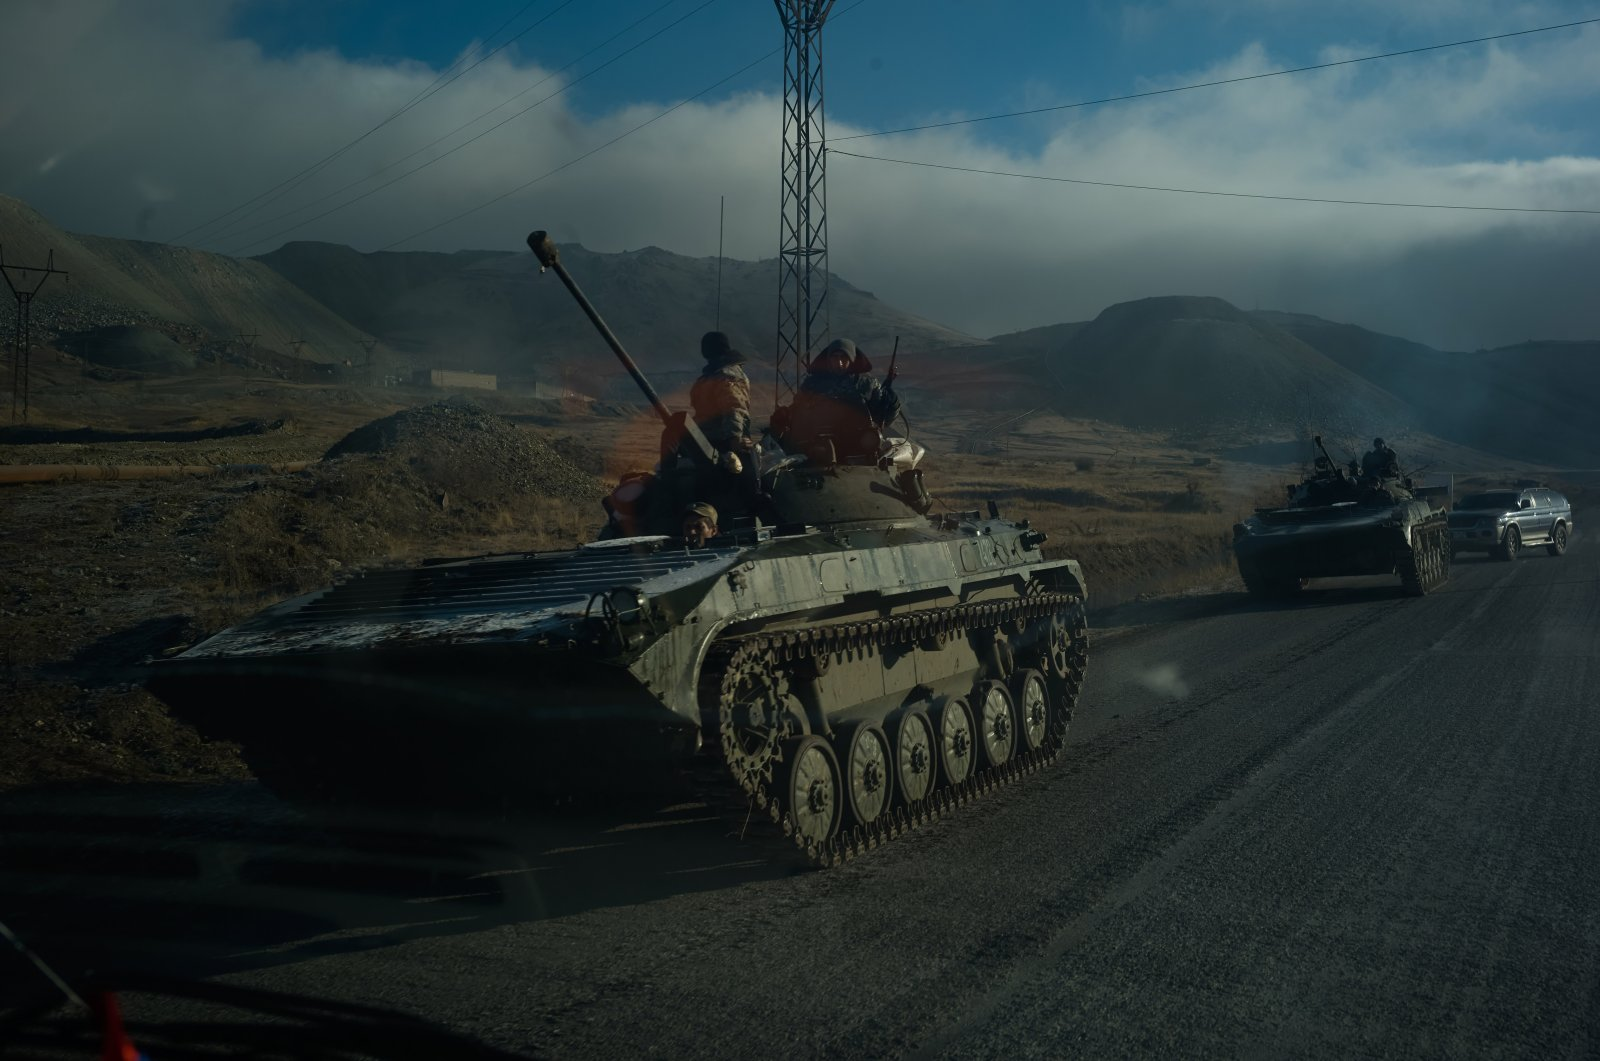 Armenian tanks leave the Nagorno-Karabakh region following the end of the war with Azerbaijan, in Vardenis, Armenia, Nov. 12, 2020. (Photo by Getty Images)